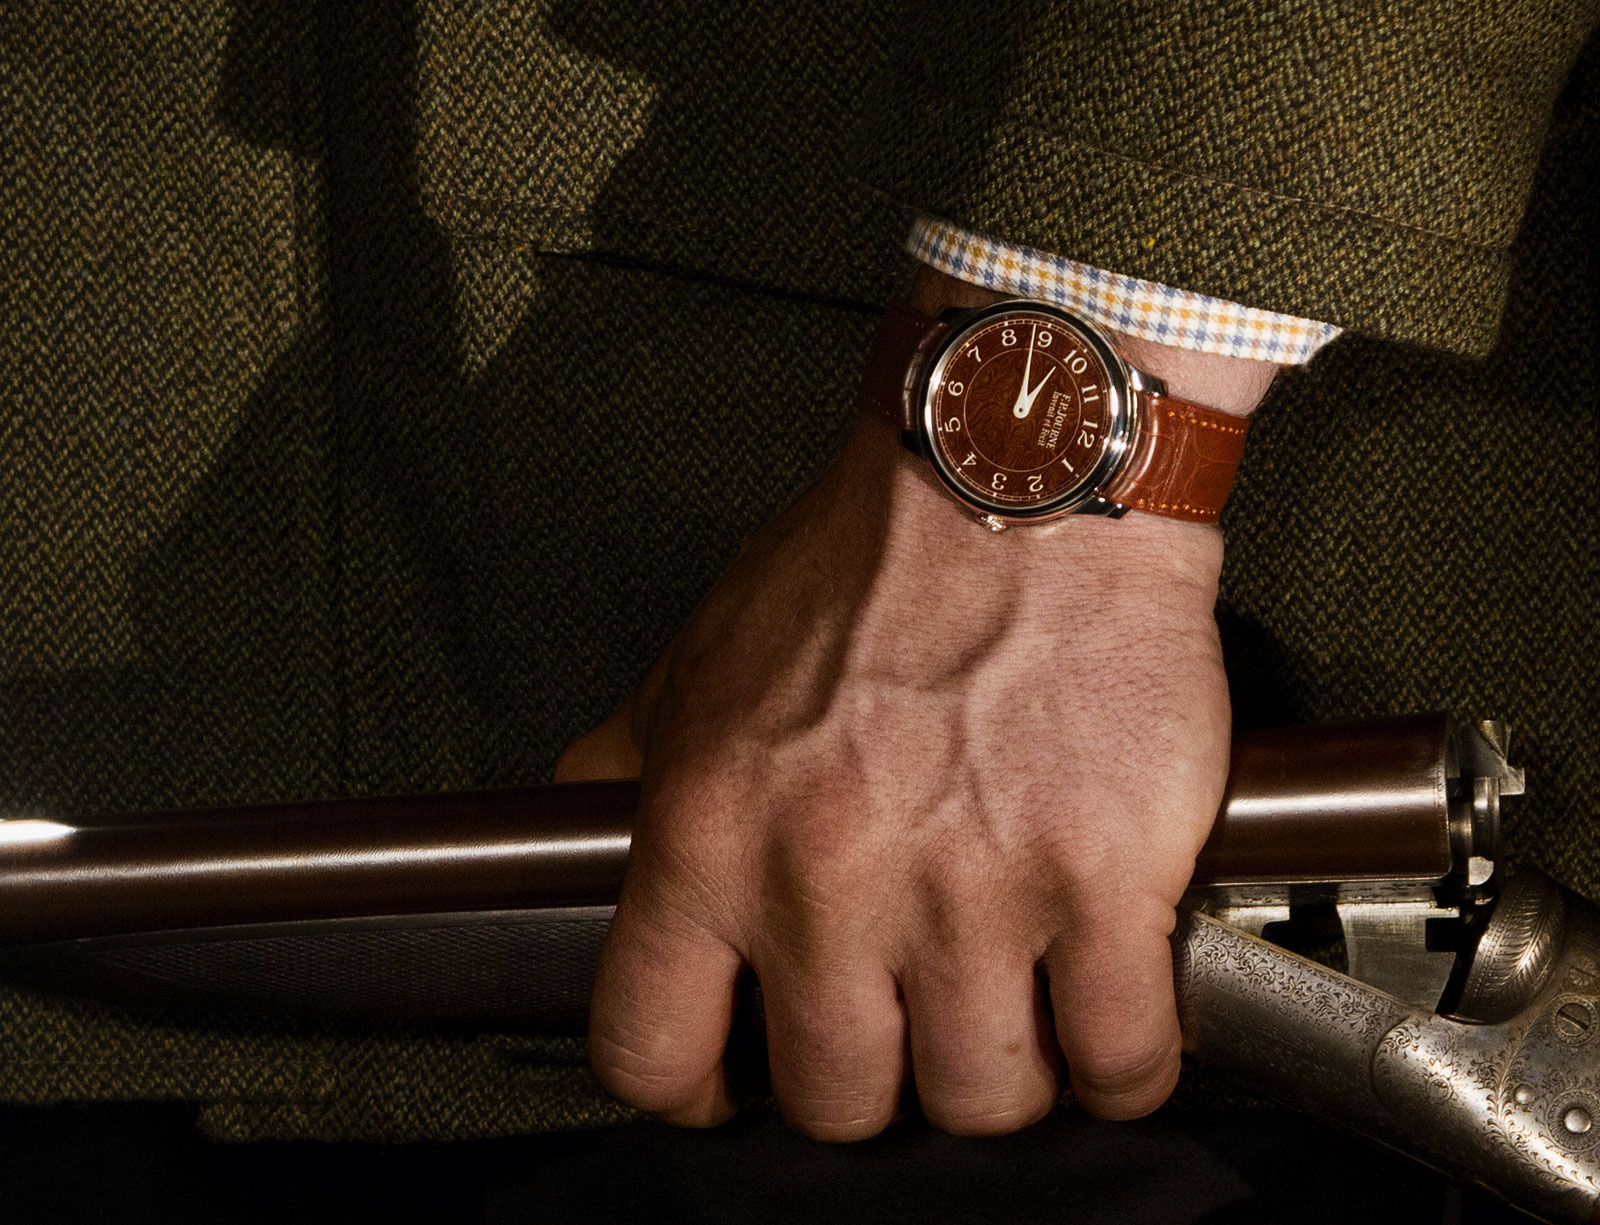 FP Journe Holland and Holland 5